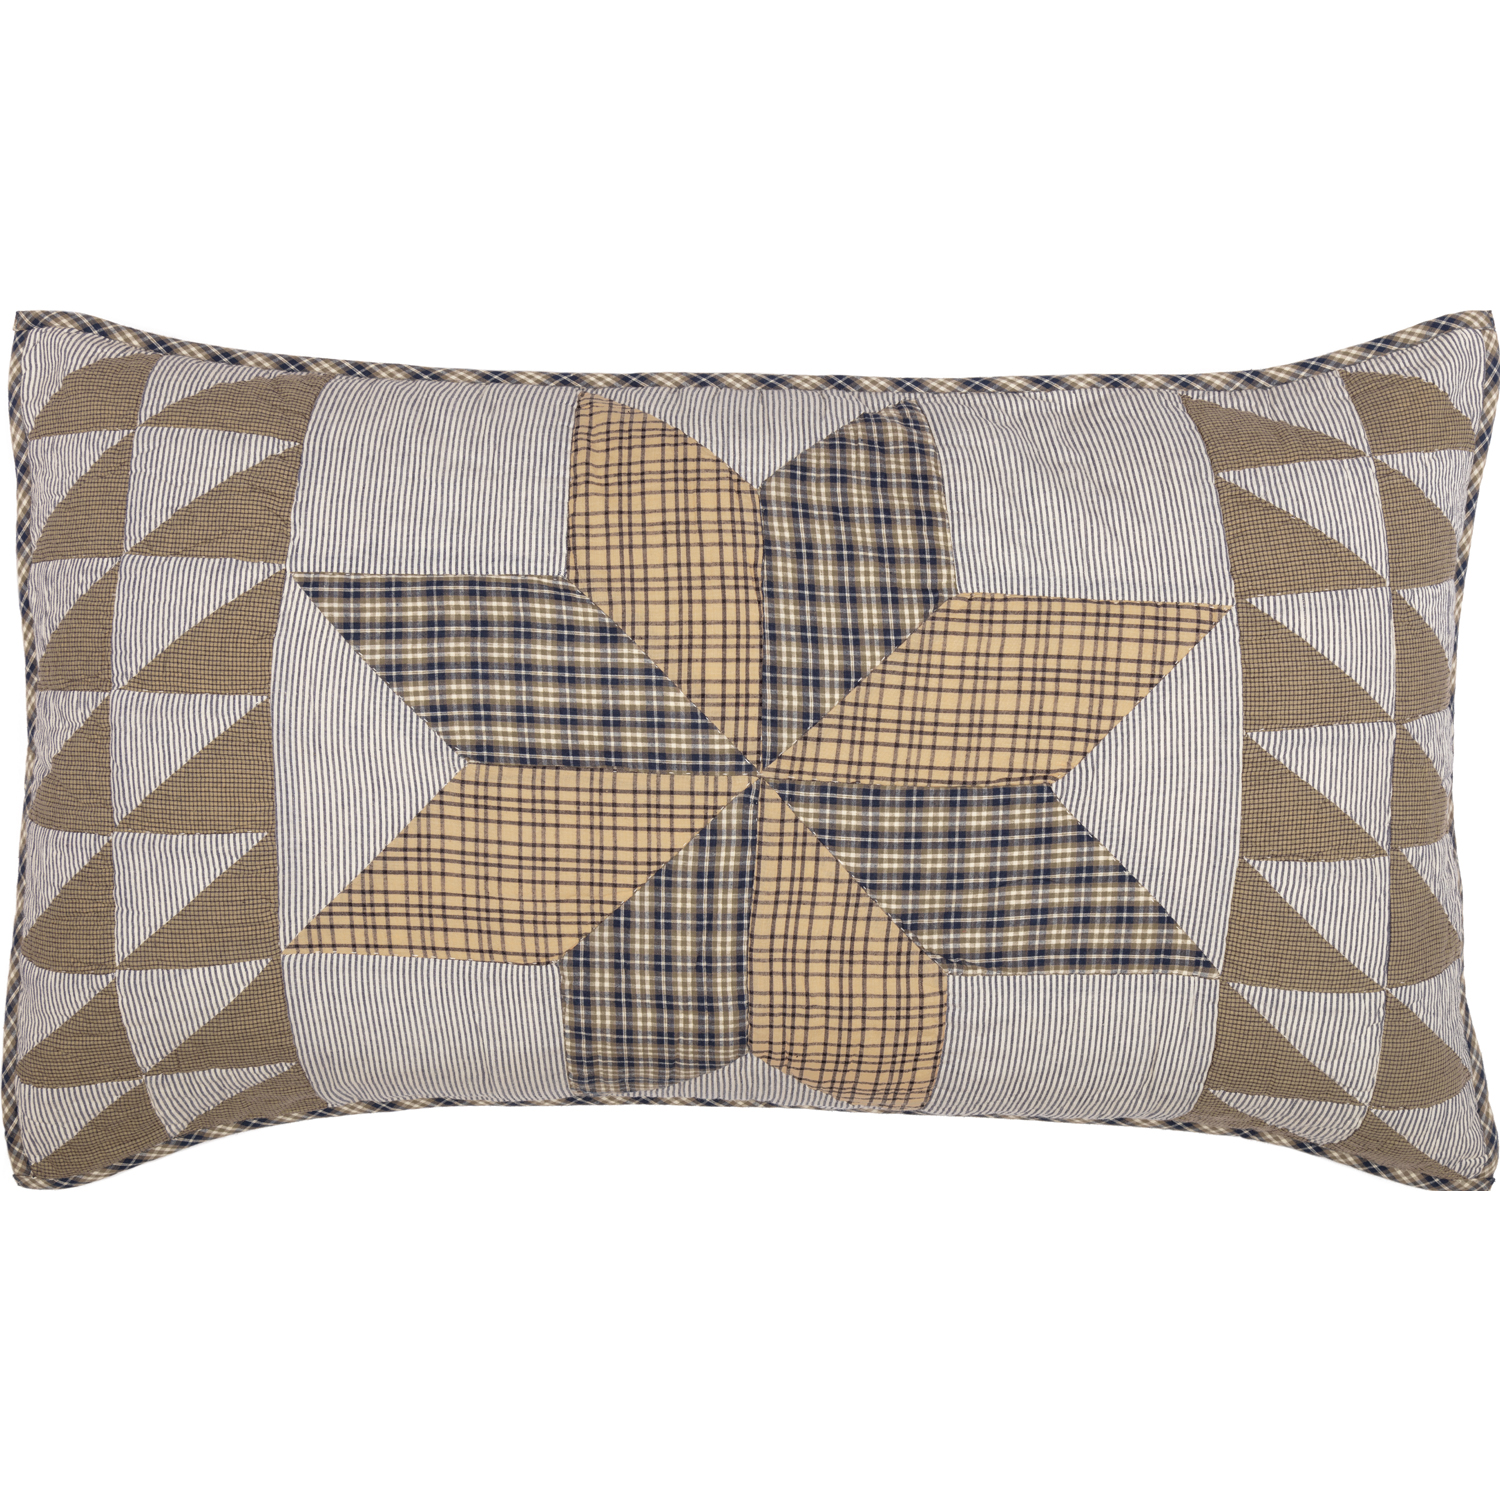 Dakota Star Farmhouse Blue King Sham 21x37